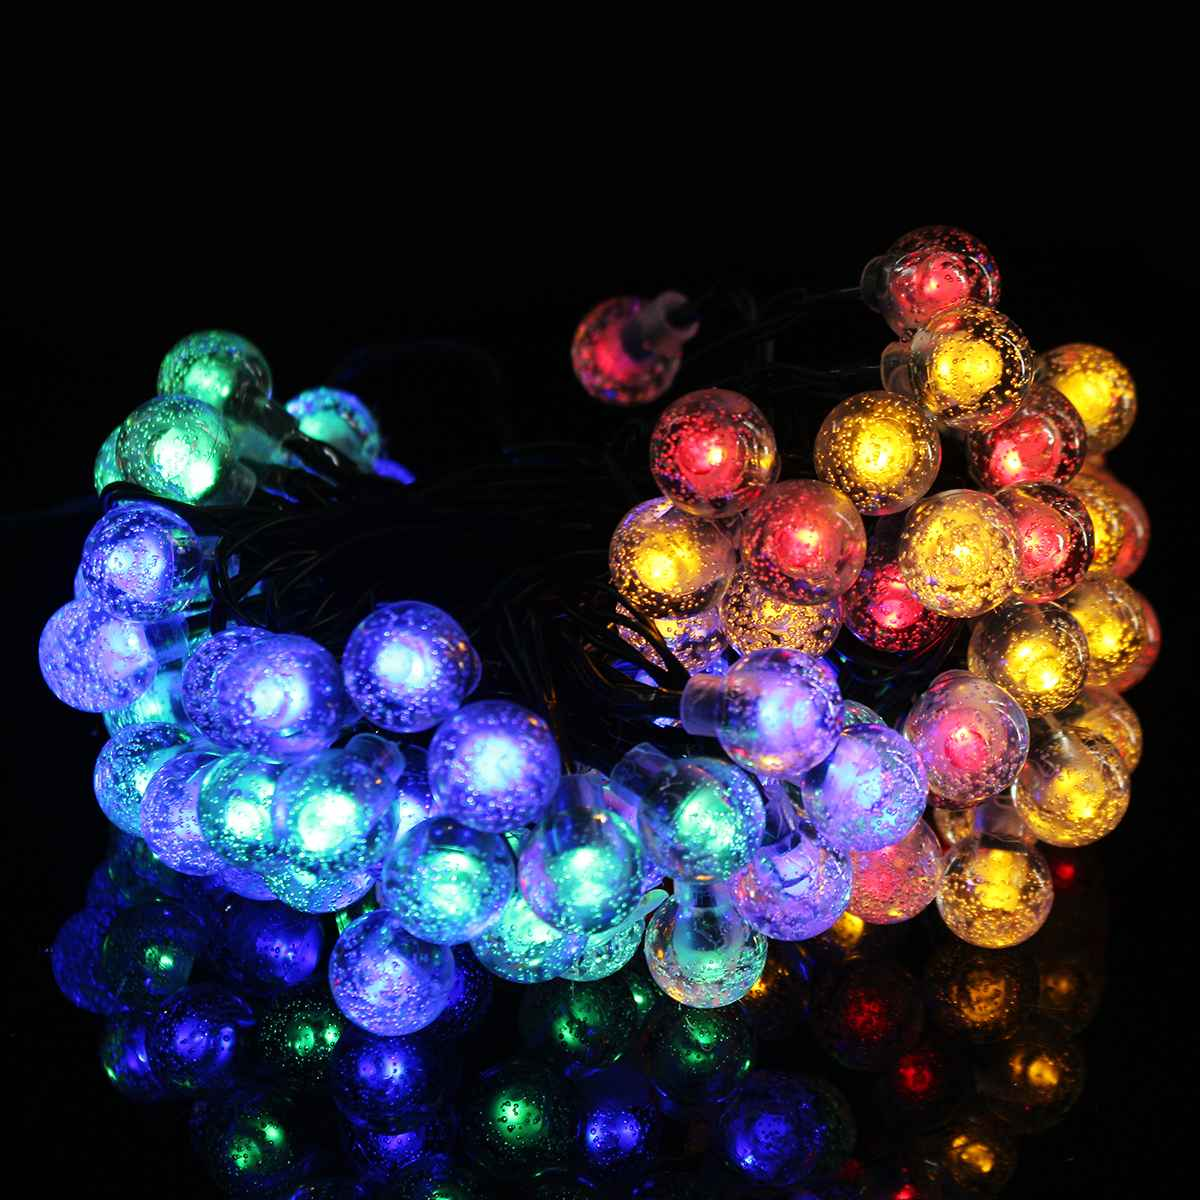 12m 100 Led Crystal Ball Solar Waterproof Outdoor String Lights Solar Powered Globe Fairy String Lights For Christmas Sale Price Reviews Gearbest